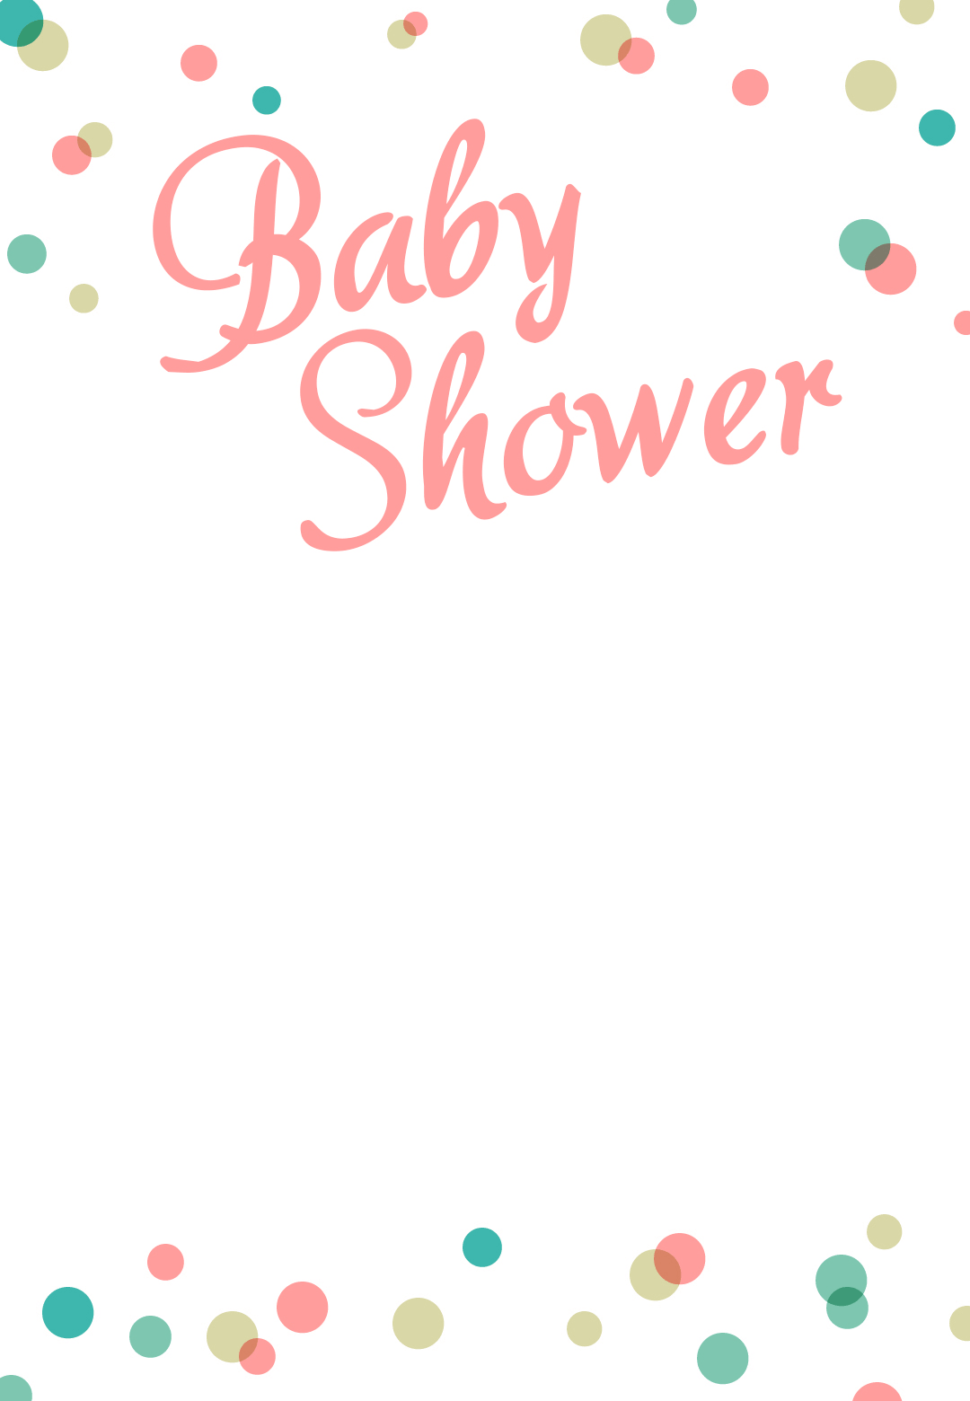 Baby Shower:Sturdy Baby Shower Invitation Template Image Concepts Baby Shower Invitation Template Baby Shower Bingo Baby Shower Accessories Arreglos Para Baby Shower Baby Shower Clip Art Dancing Dots Borders Free Printable Baby Shower Invitation